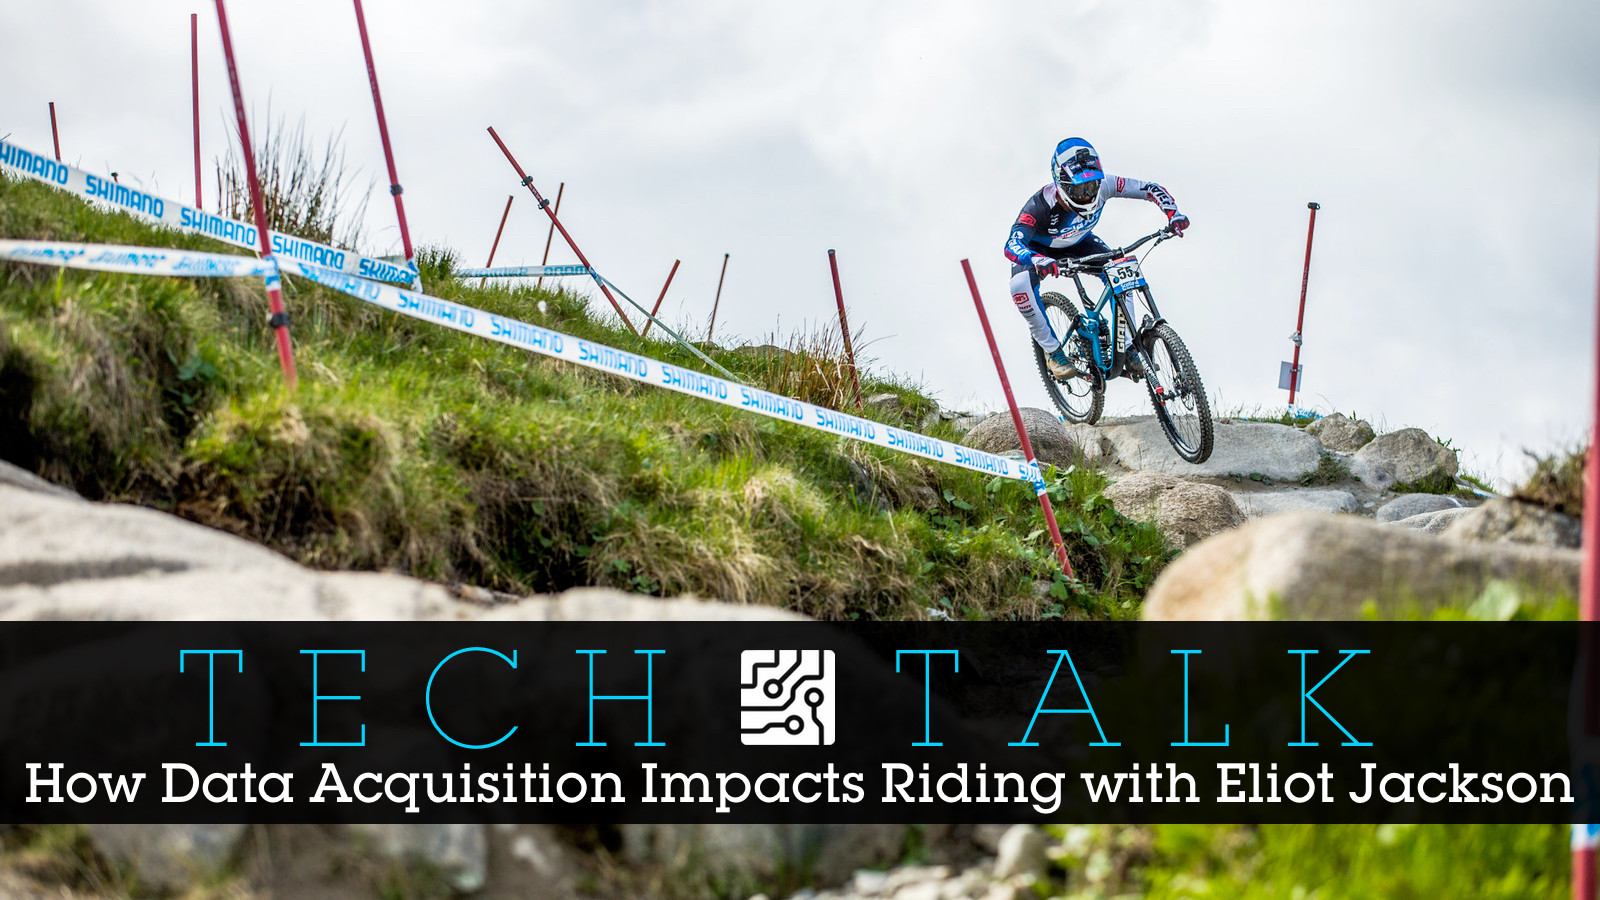 TECH TALK: Eliot Jackson On How Data Acquisition Has Impacted His Racing